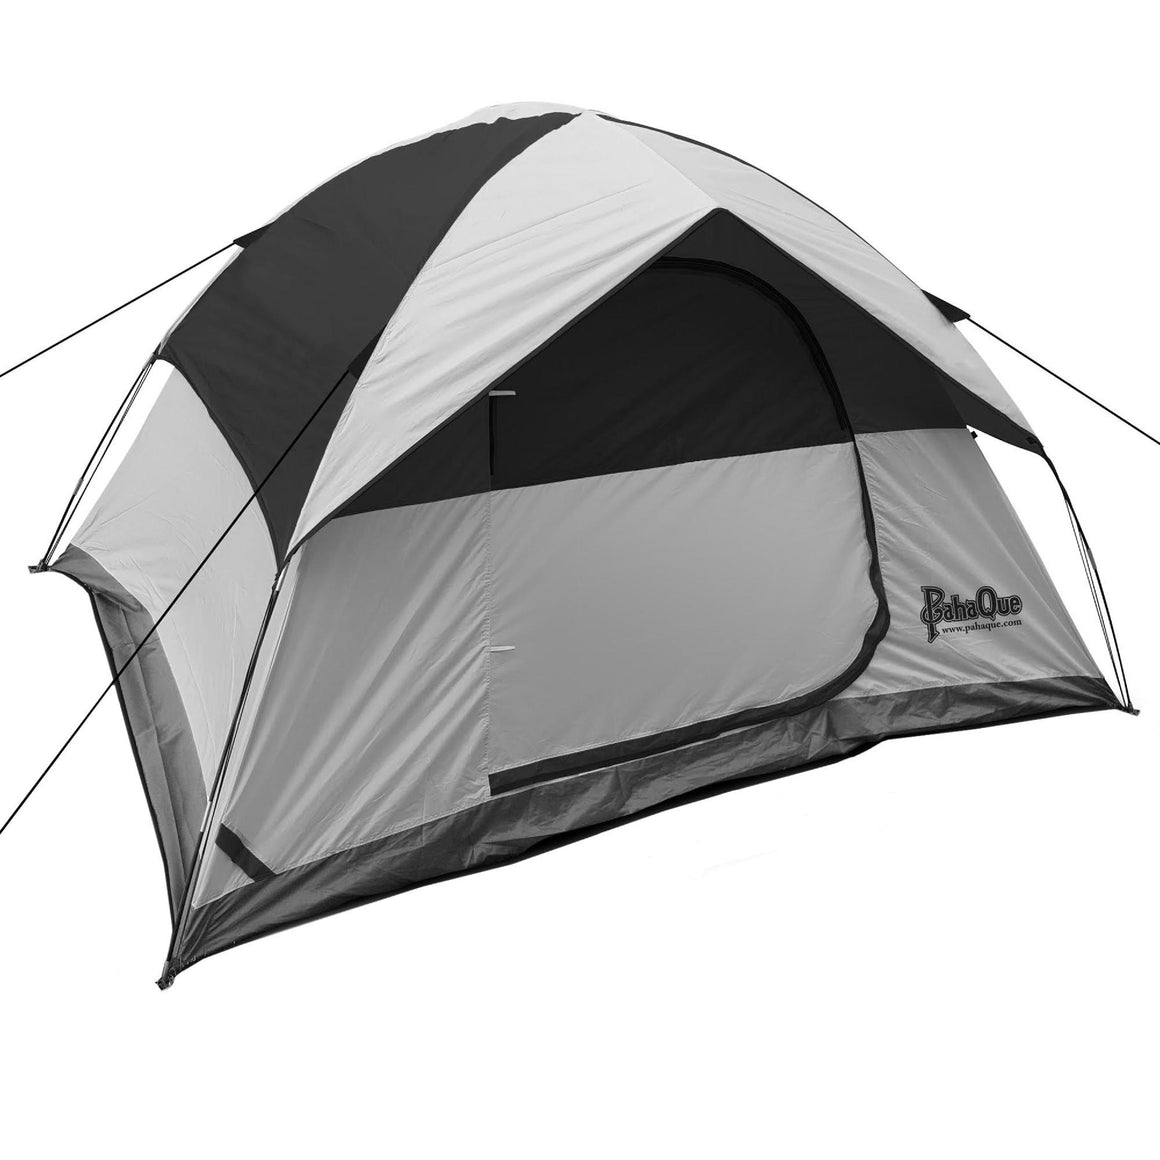 PahaQue Rendezvous 4 Person Dome Tent, Gray-Black